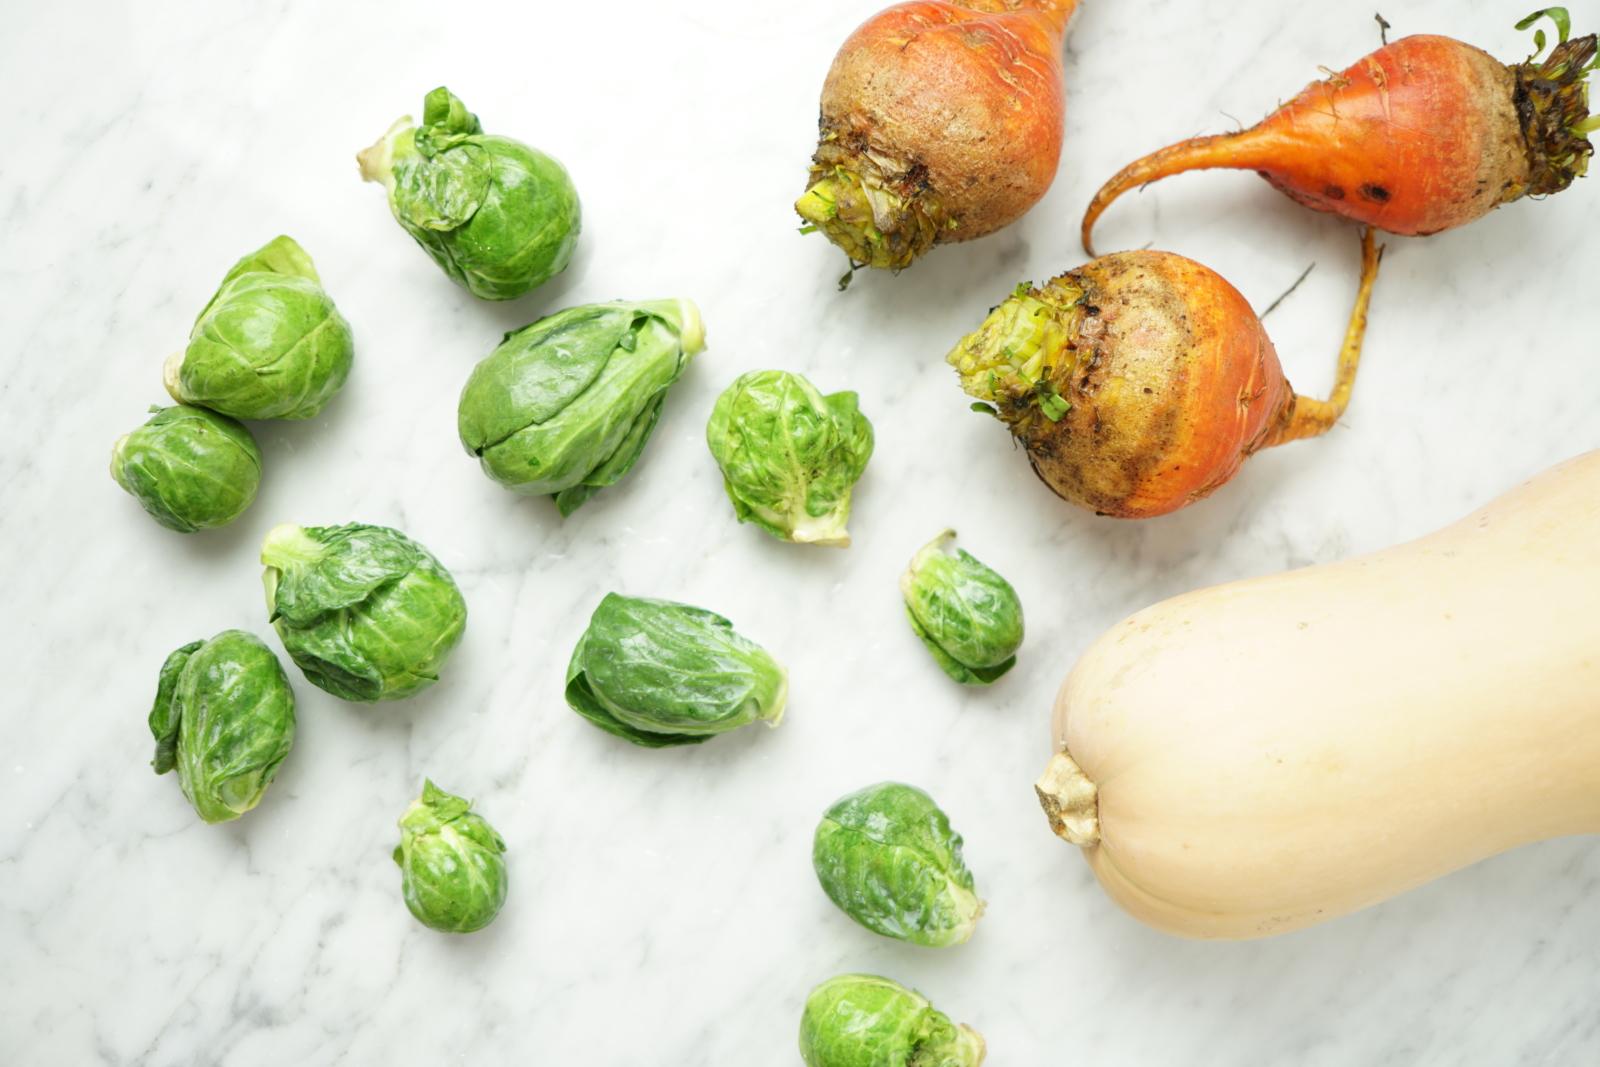 thanksgiving vegetables - brussels sprouts, butternut squash, beets